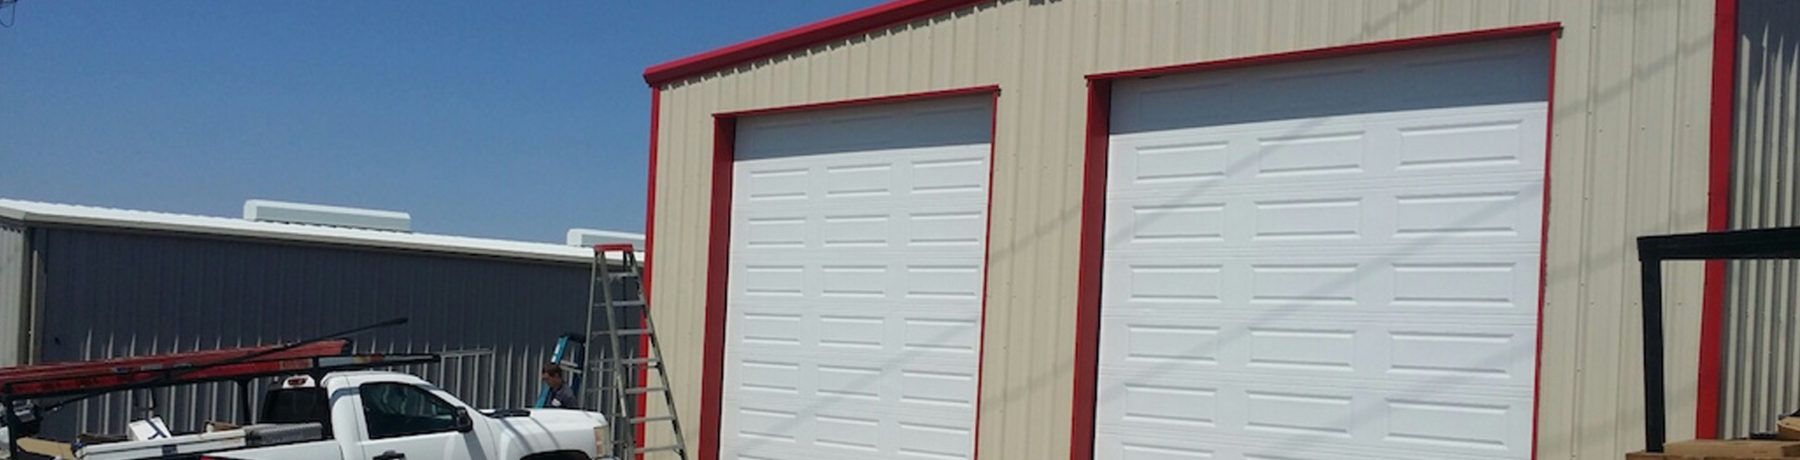 Shop Commercial Garage Doors